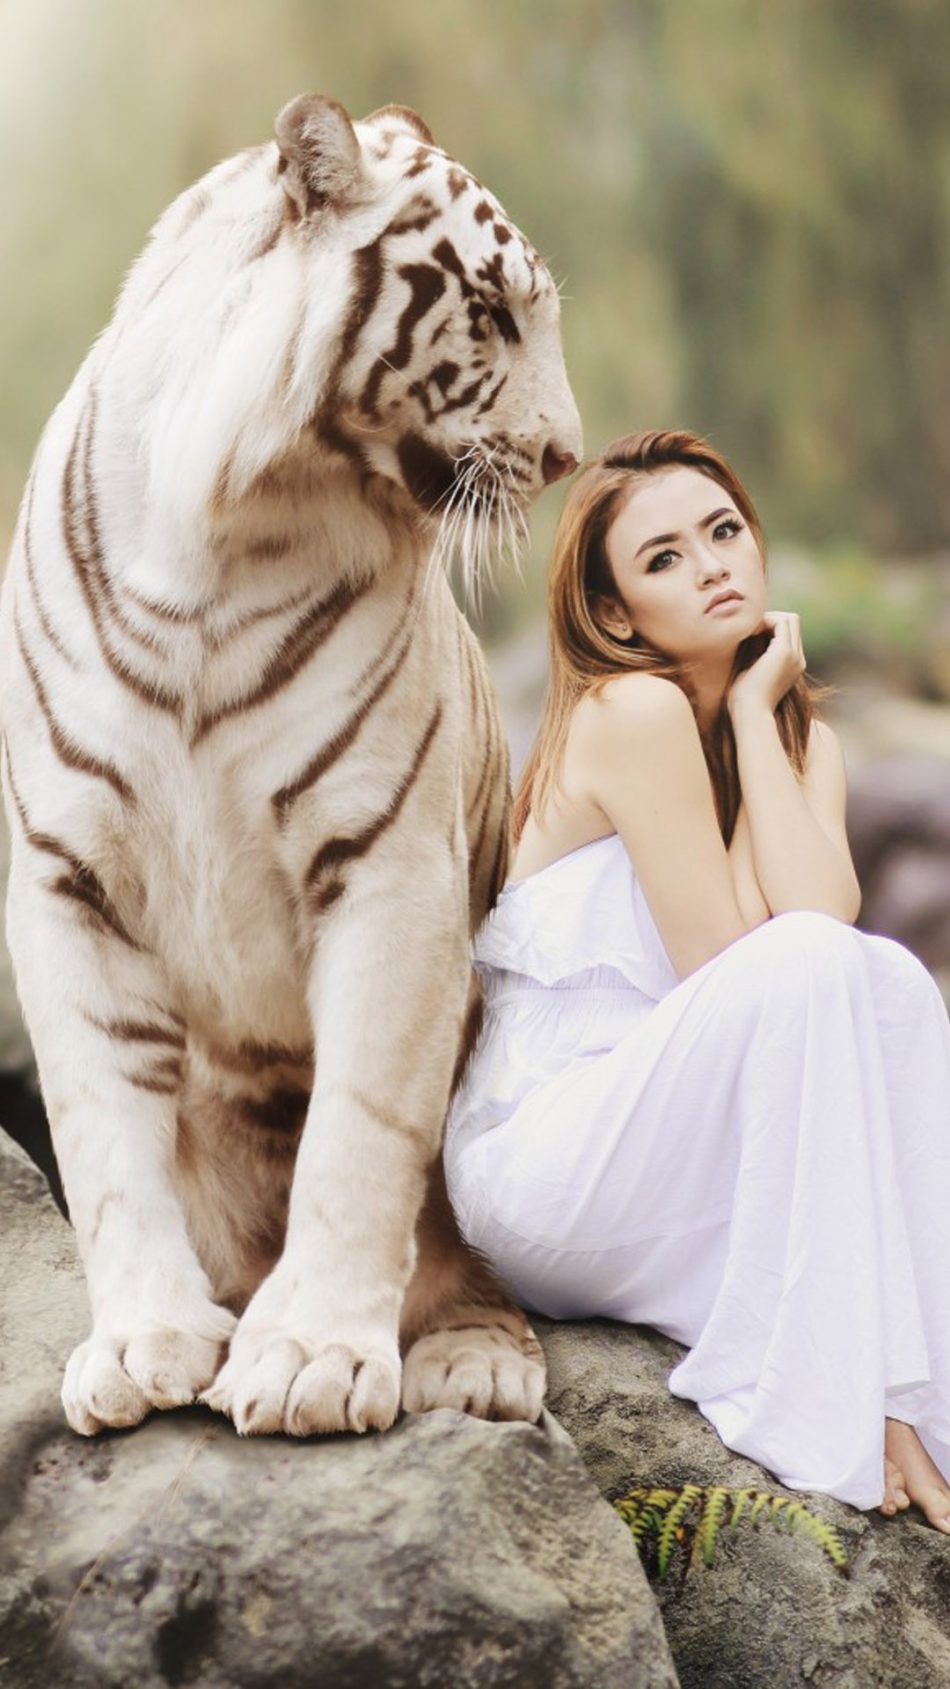 Asian Model With White Tiger Photoshoot Hd Mobile Wallpaper White Tiger With A Girl 950x1689 Wallpaper Teahub Io